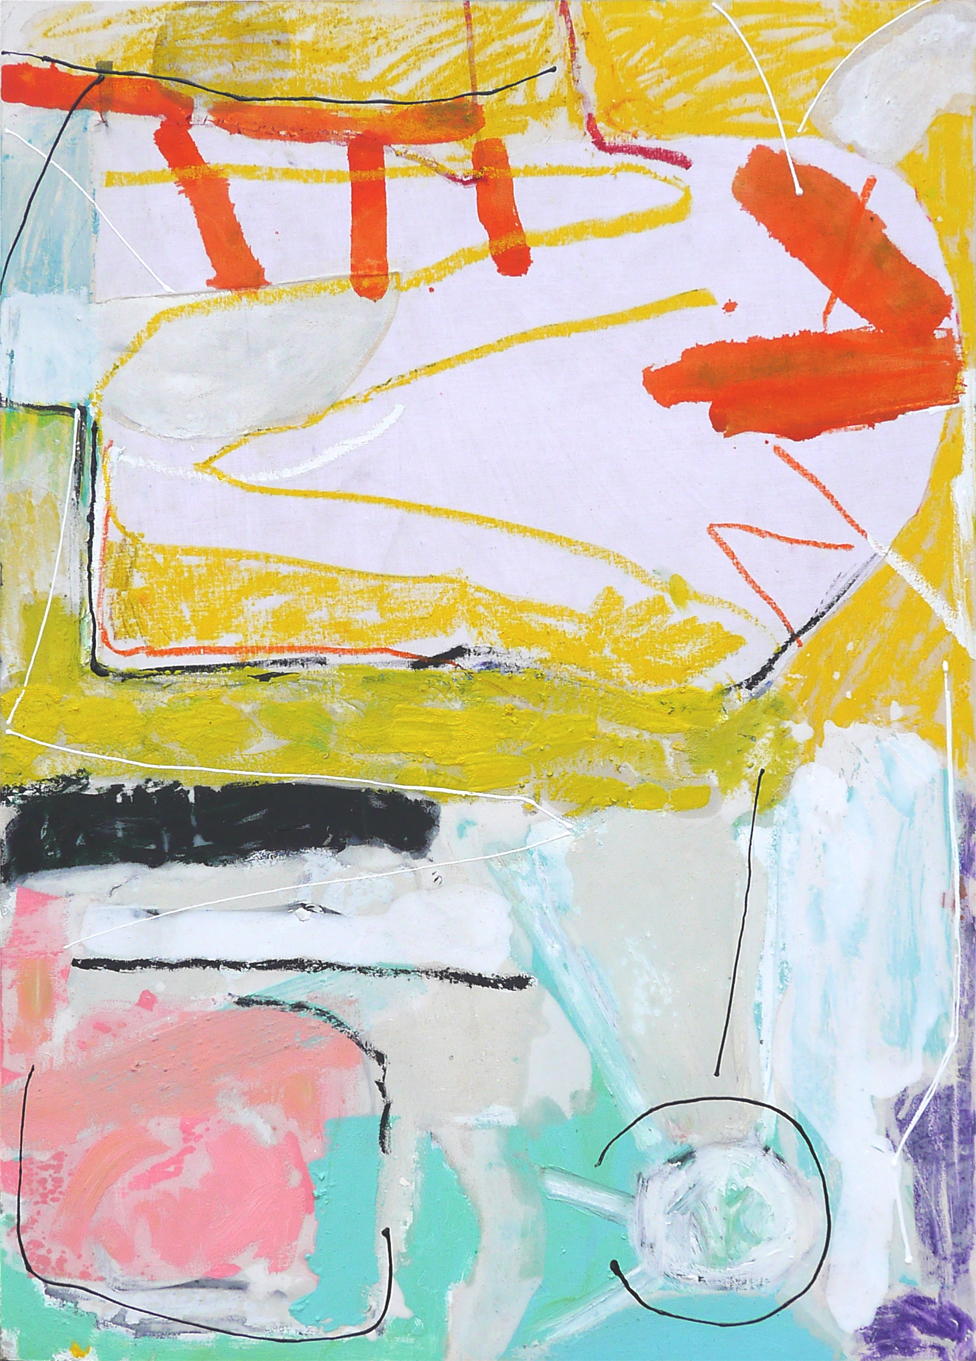 From the Island to the sea 2019 60c84cm mixed media on board Paintings RECENT